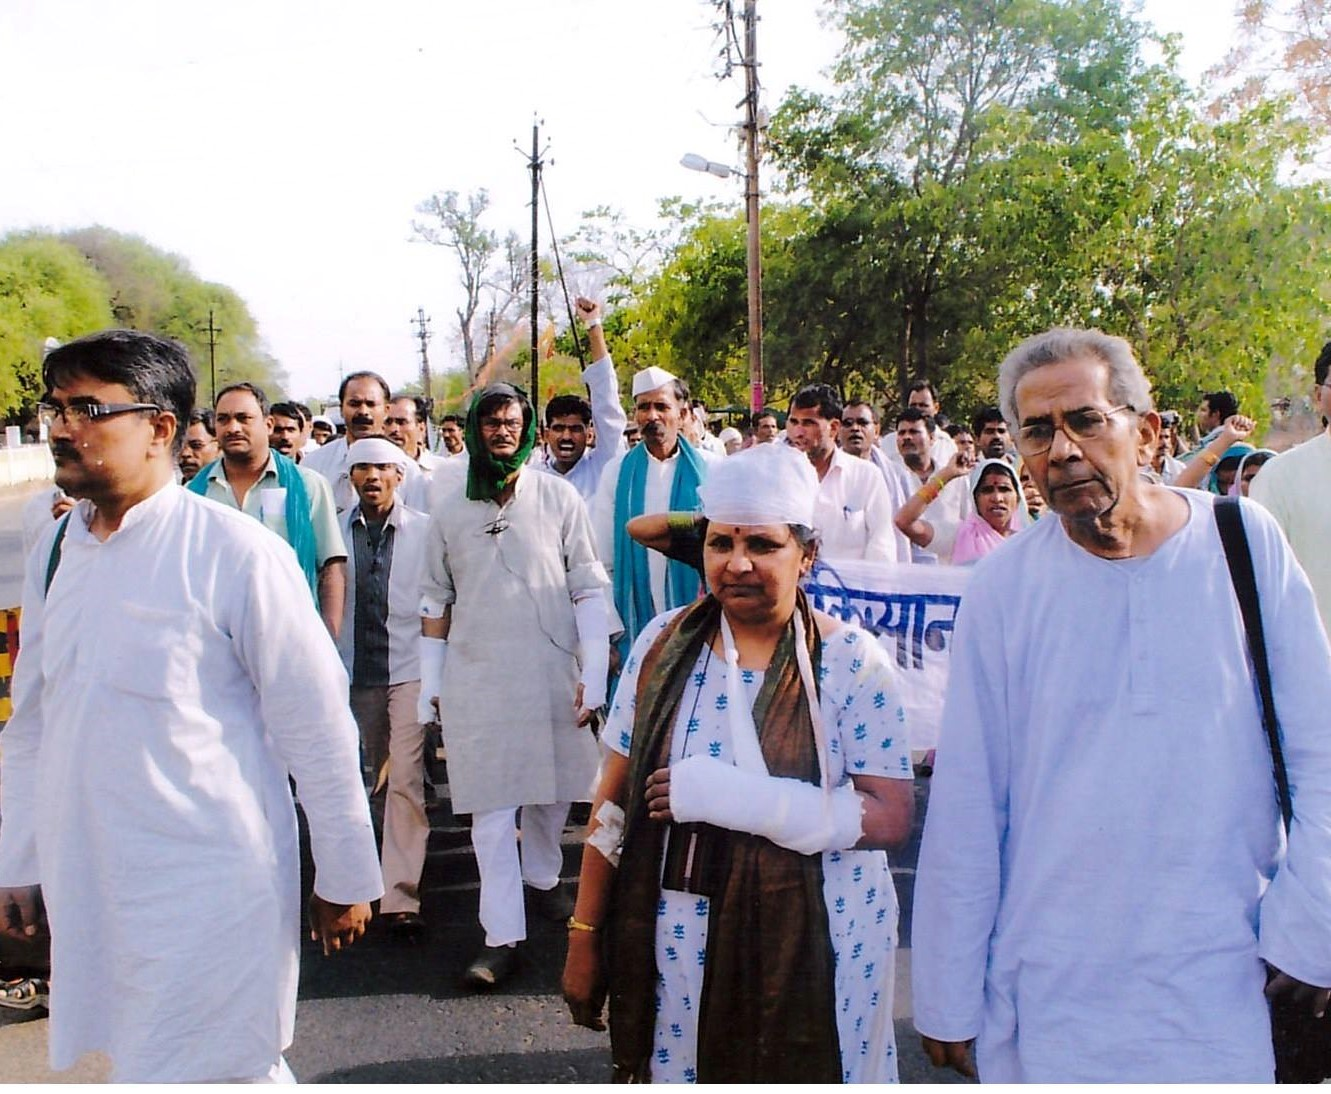 Leaders of the Chhindwara protest movement, including Aradhana Bhargav (injured by anti-protest thugs) and Dr Sunilam, at a rally in Chhindwara in 2010. Image courtesy KSS